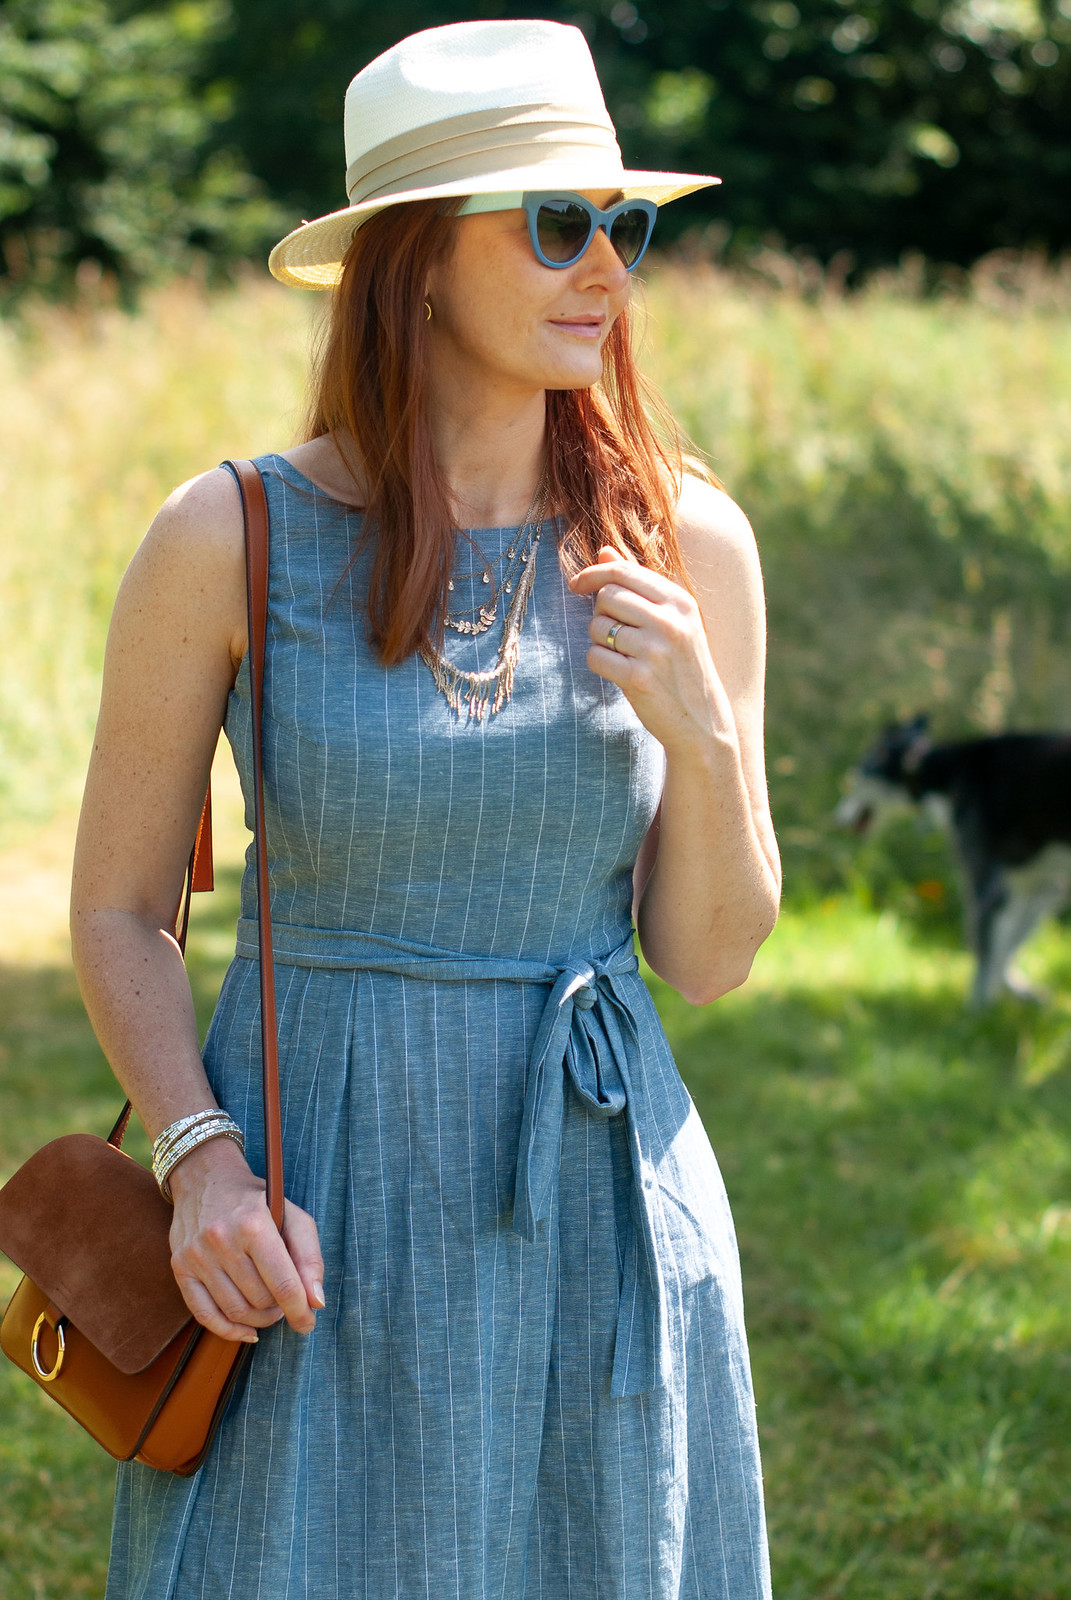 A Lightweight Chambray Dress Perfect for Summer \ styled with a cream Panama hat, tan crossbody bag, red wedge espadrilles and blue cat eye sunglasses | Not Dressed As Lamb, over 40 fashion